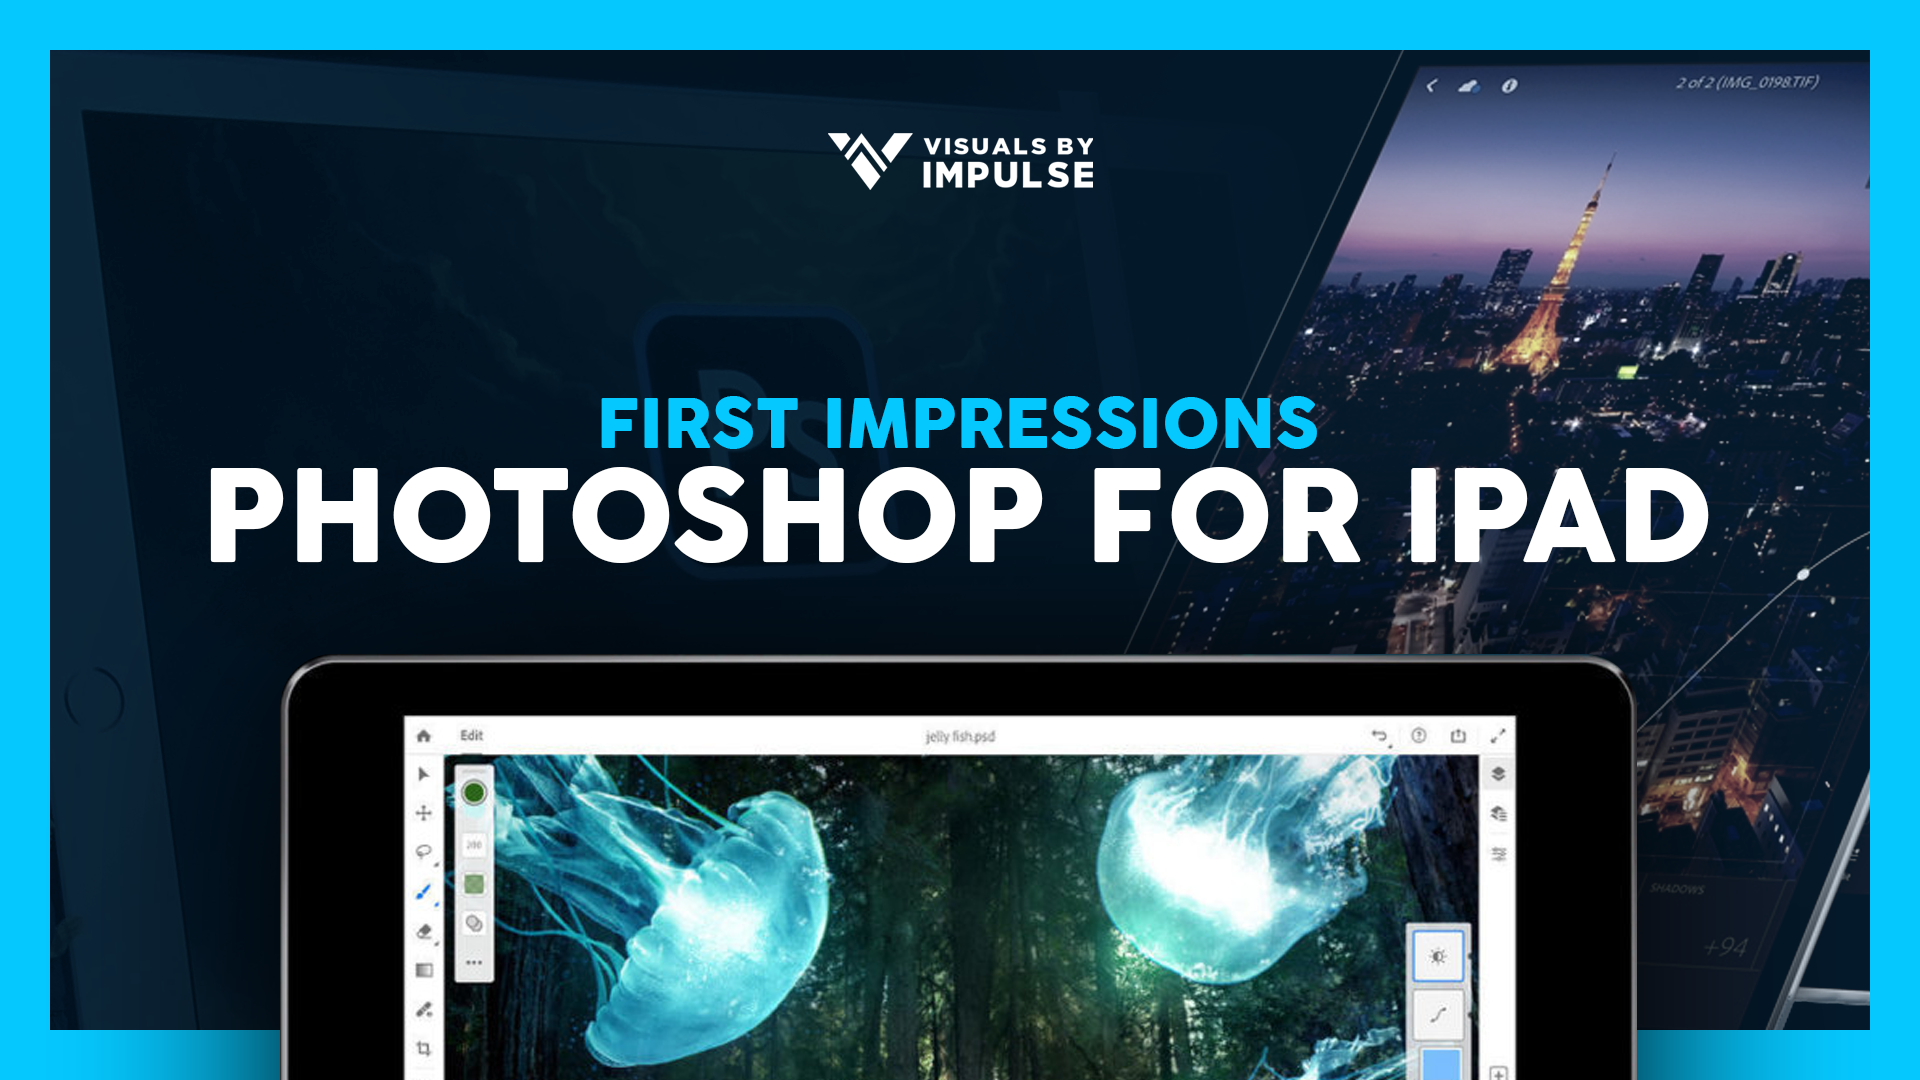 Photoshop for iPad Our First Impressions